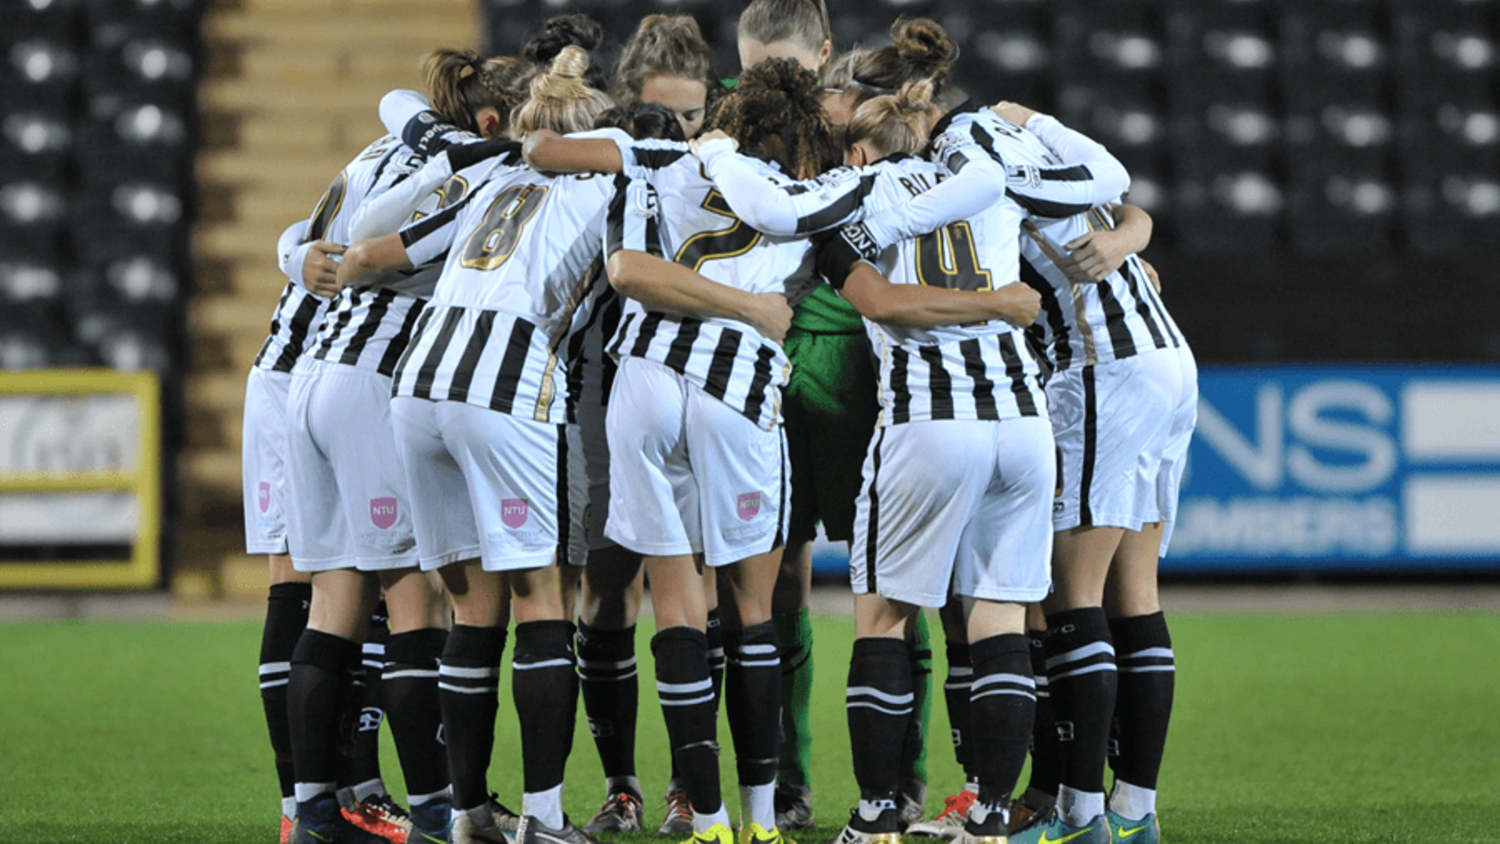 The Devastating Fate of the Notts County Ladies